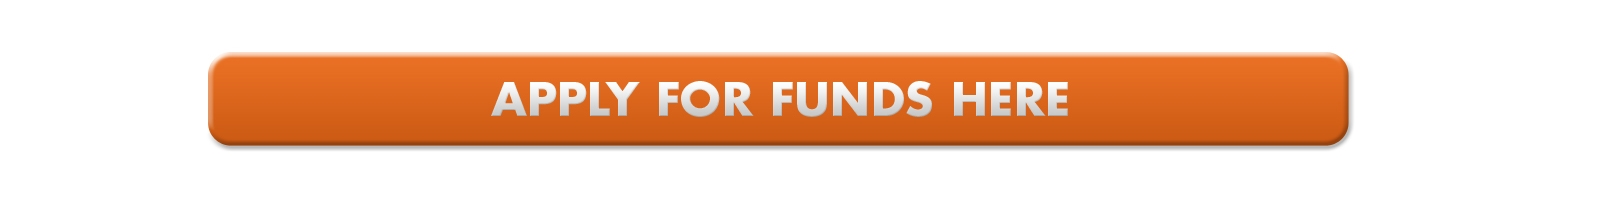 apply for funds here